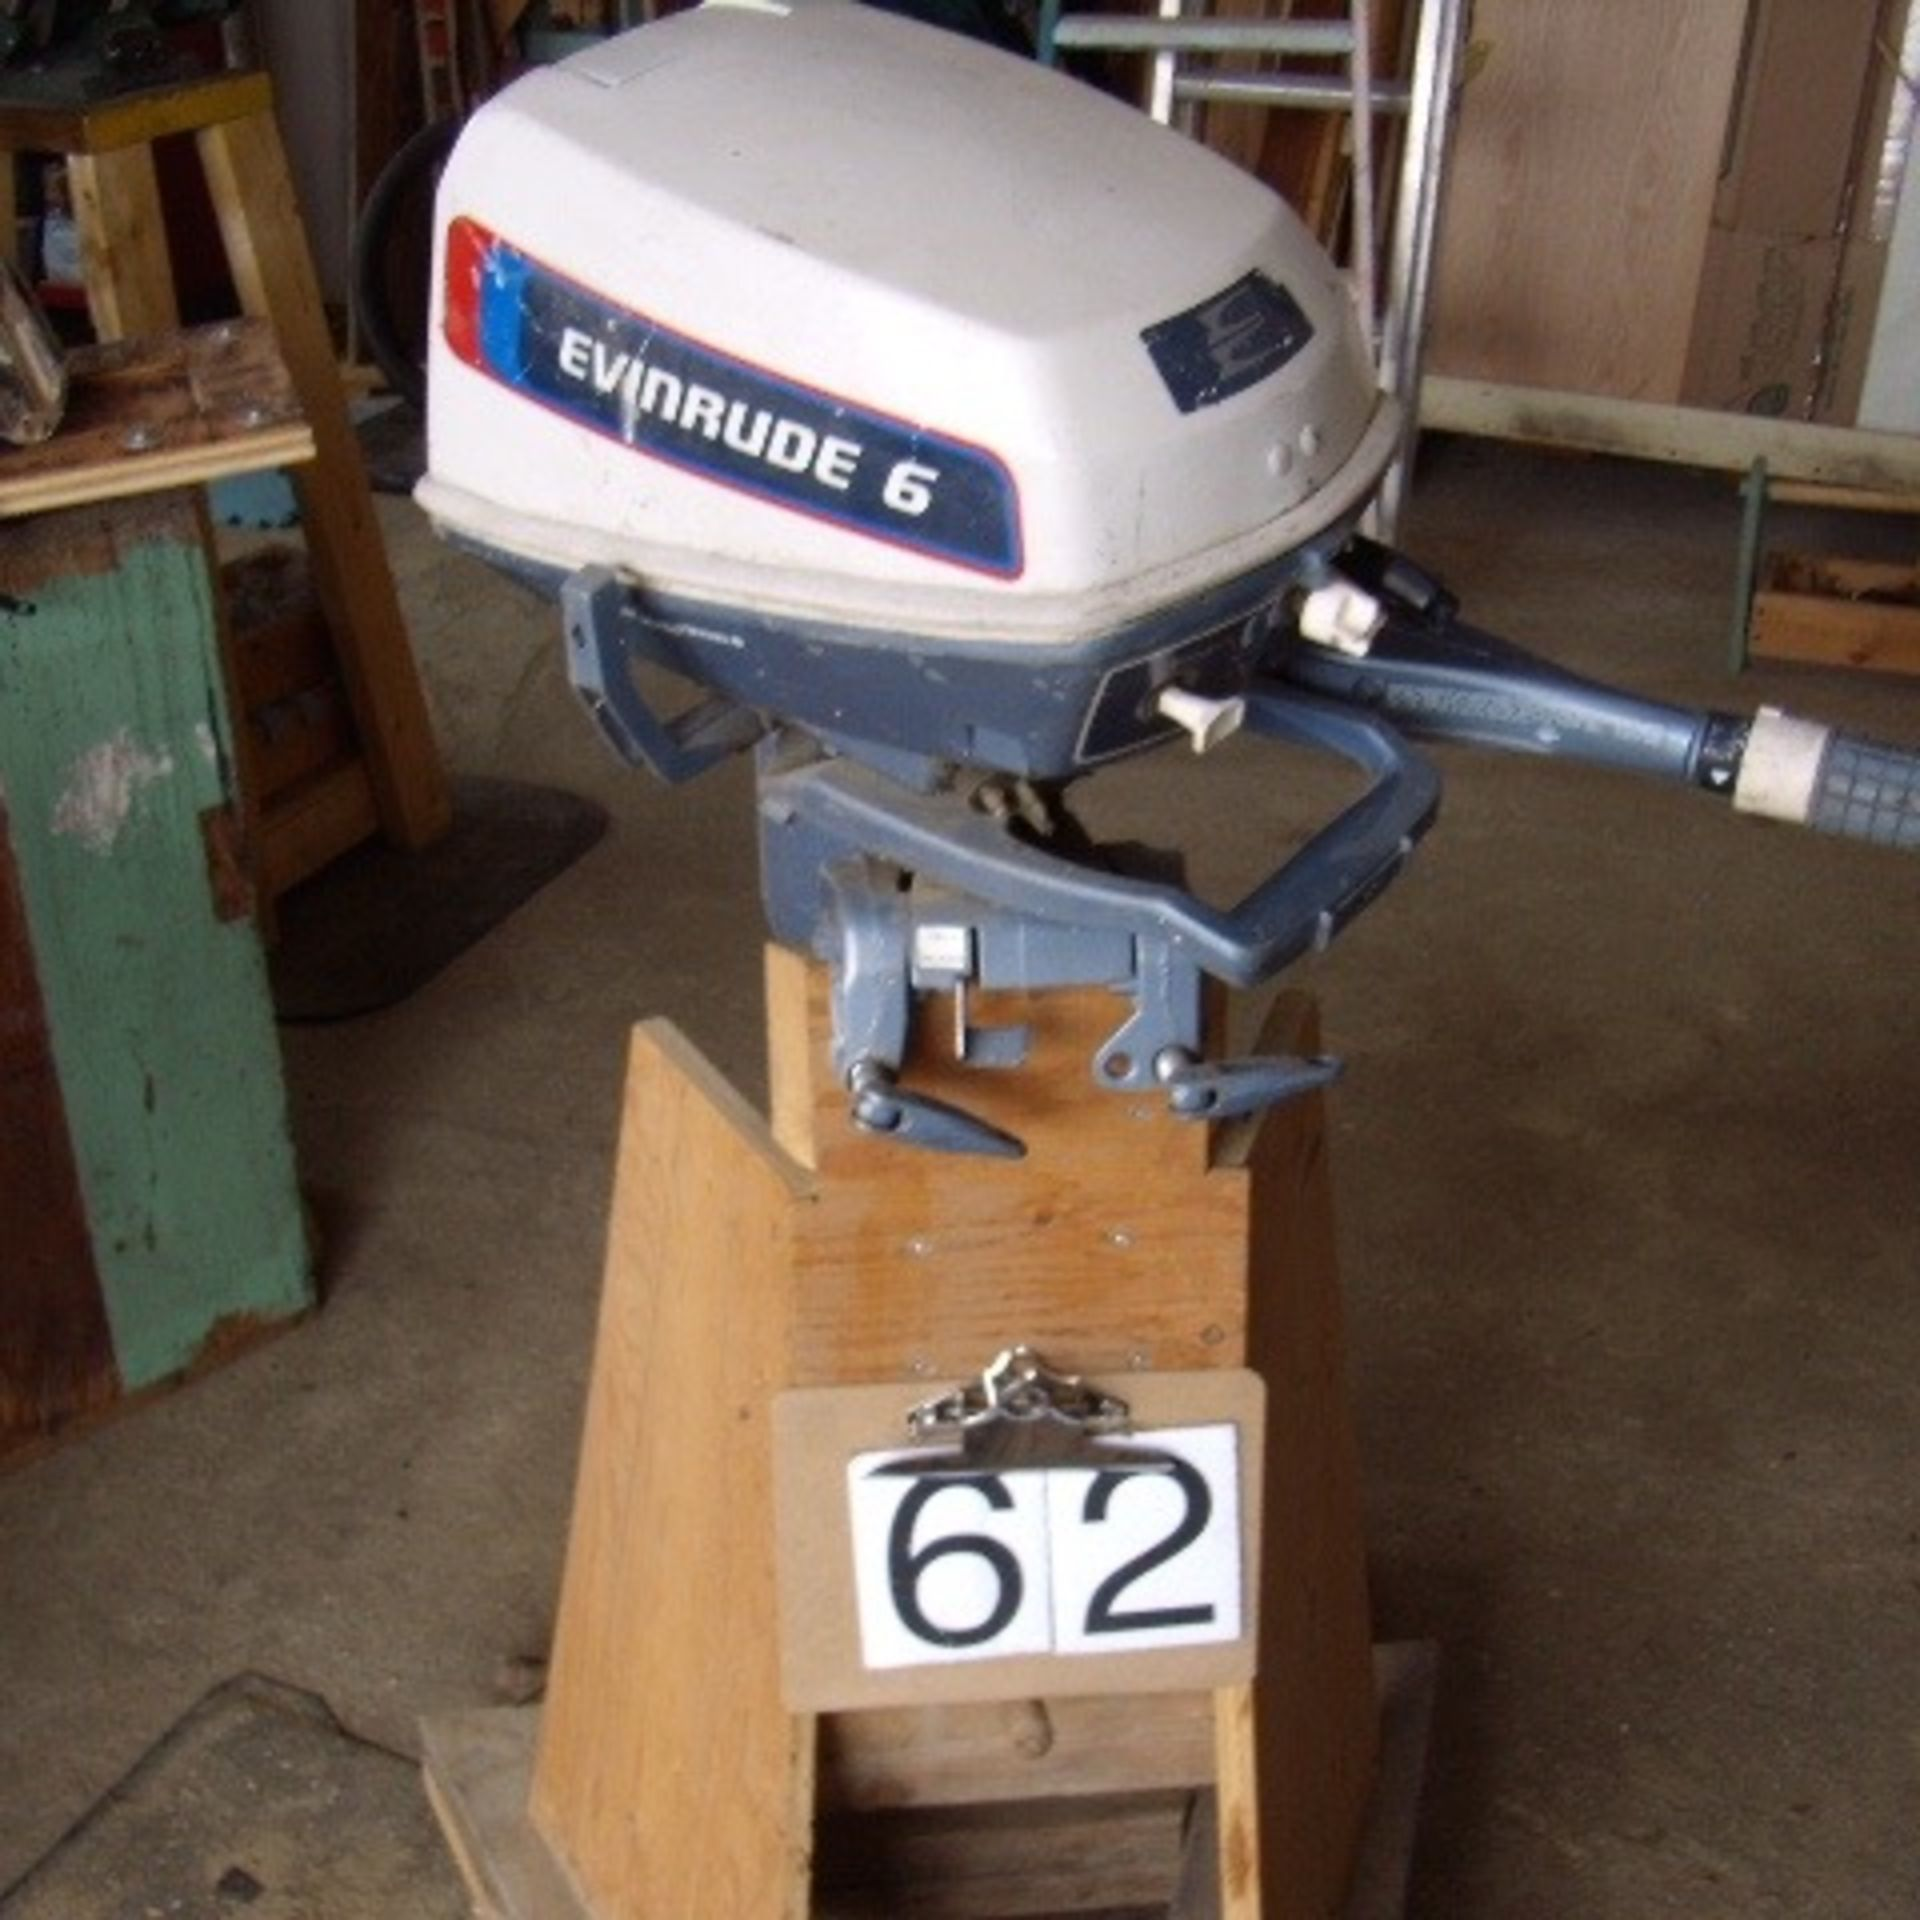 Evinrude 6 hp Boat motor & stand